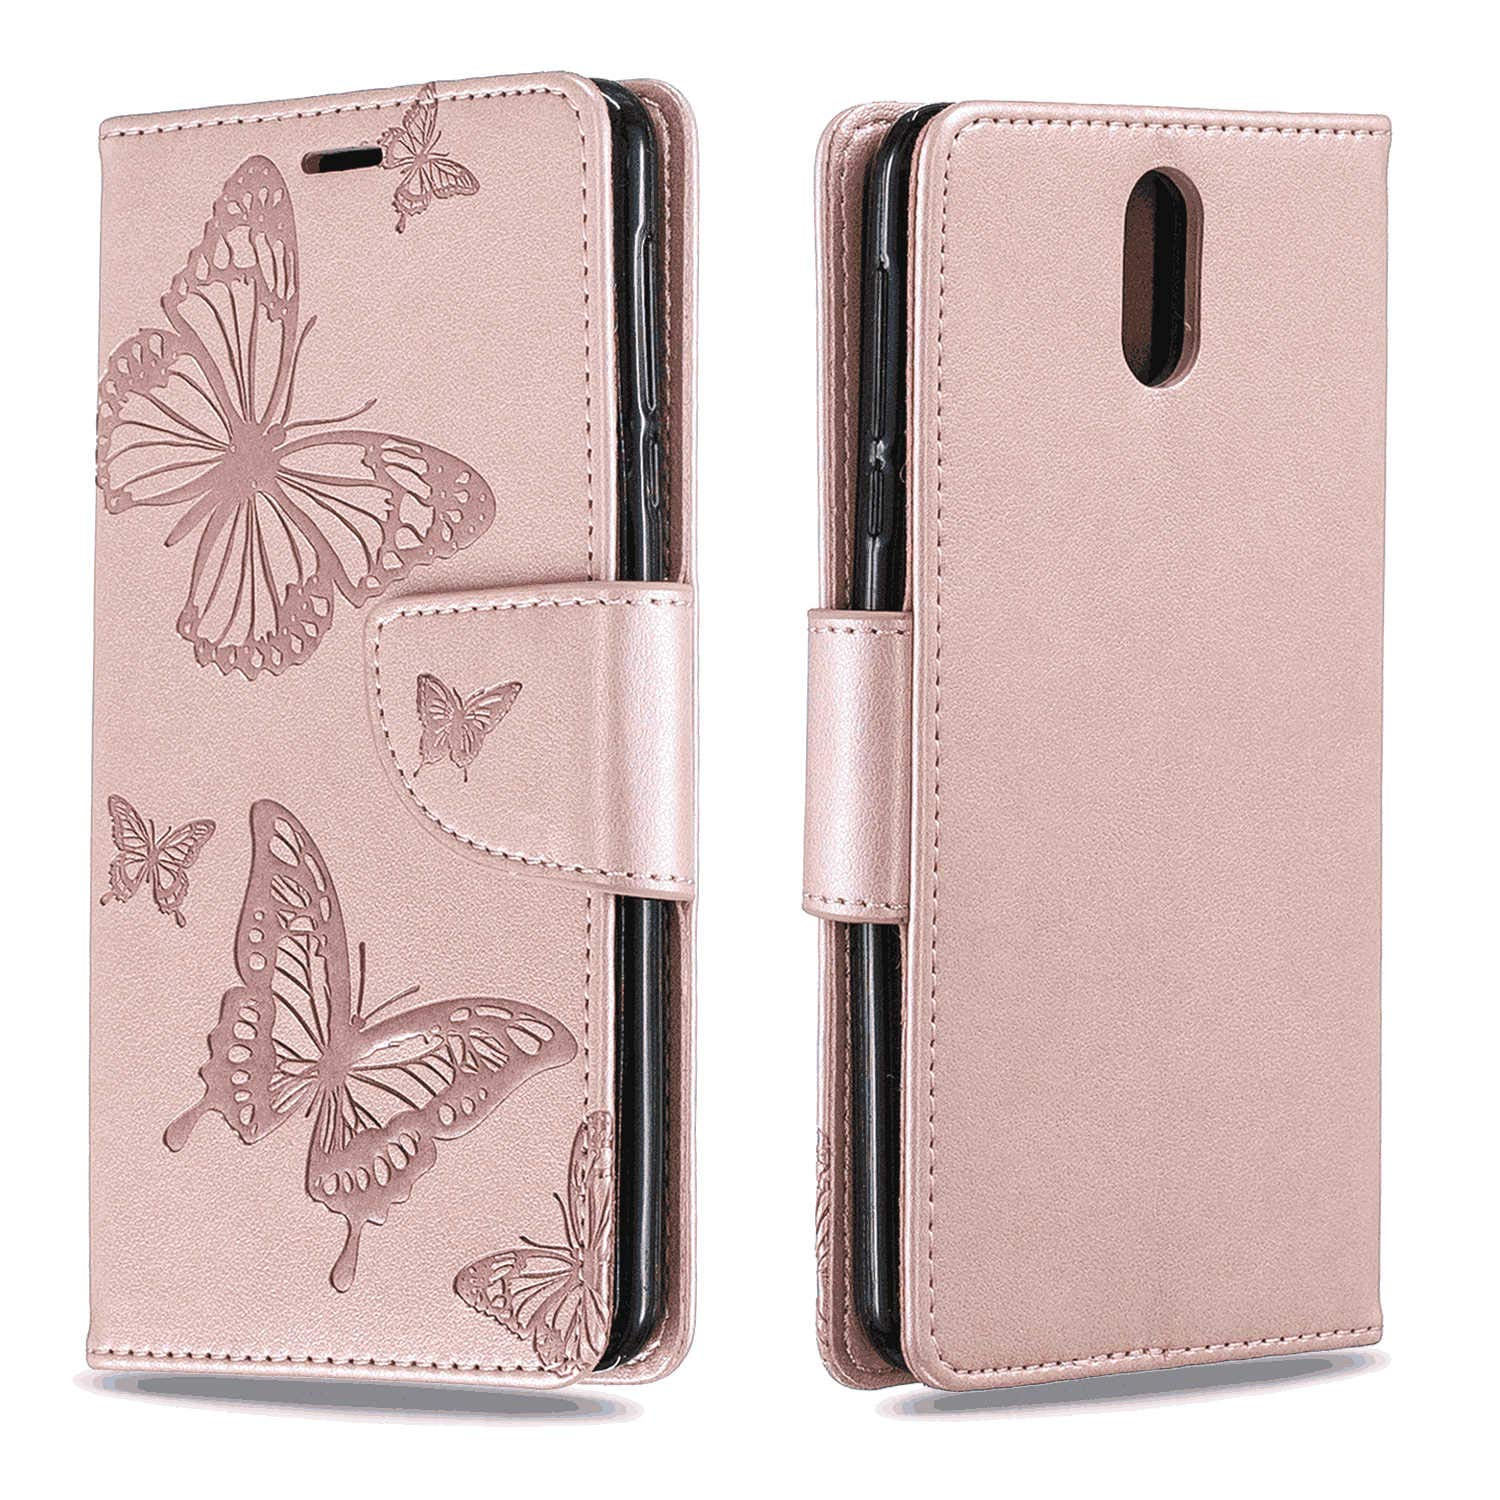 Samsung Galaxy S9 Plus Flip Case Cover for Samsung Galaxy S9 Plus Leather Card Holders Wallet case Extra-Protective Business Kickstand with Free Waterproof-Bag Classical